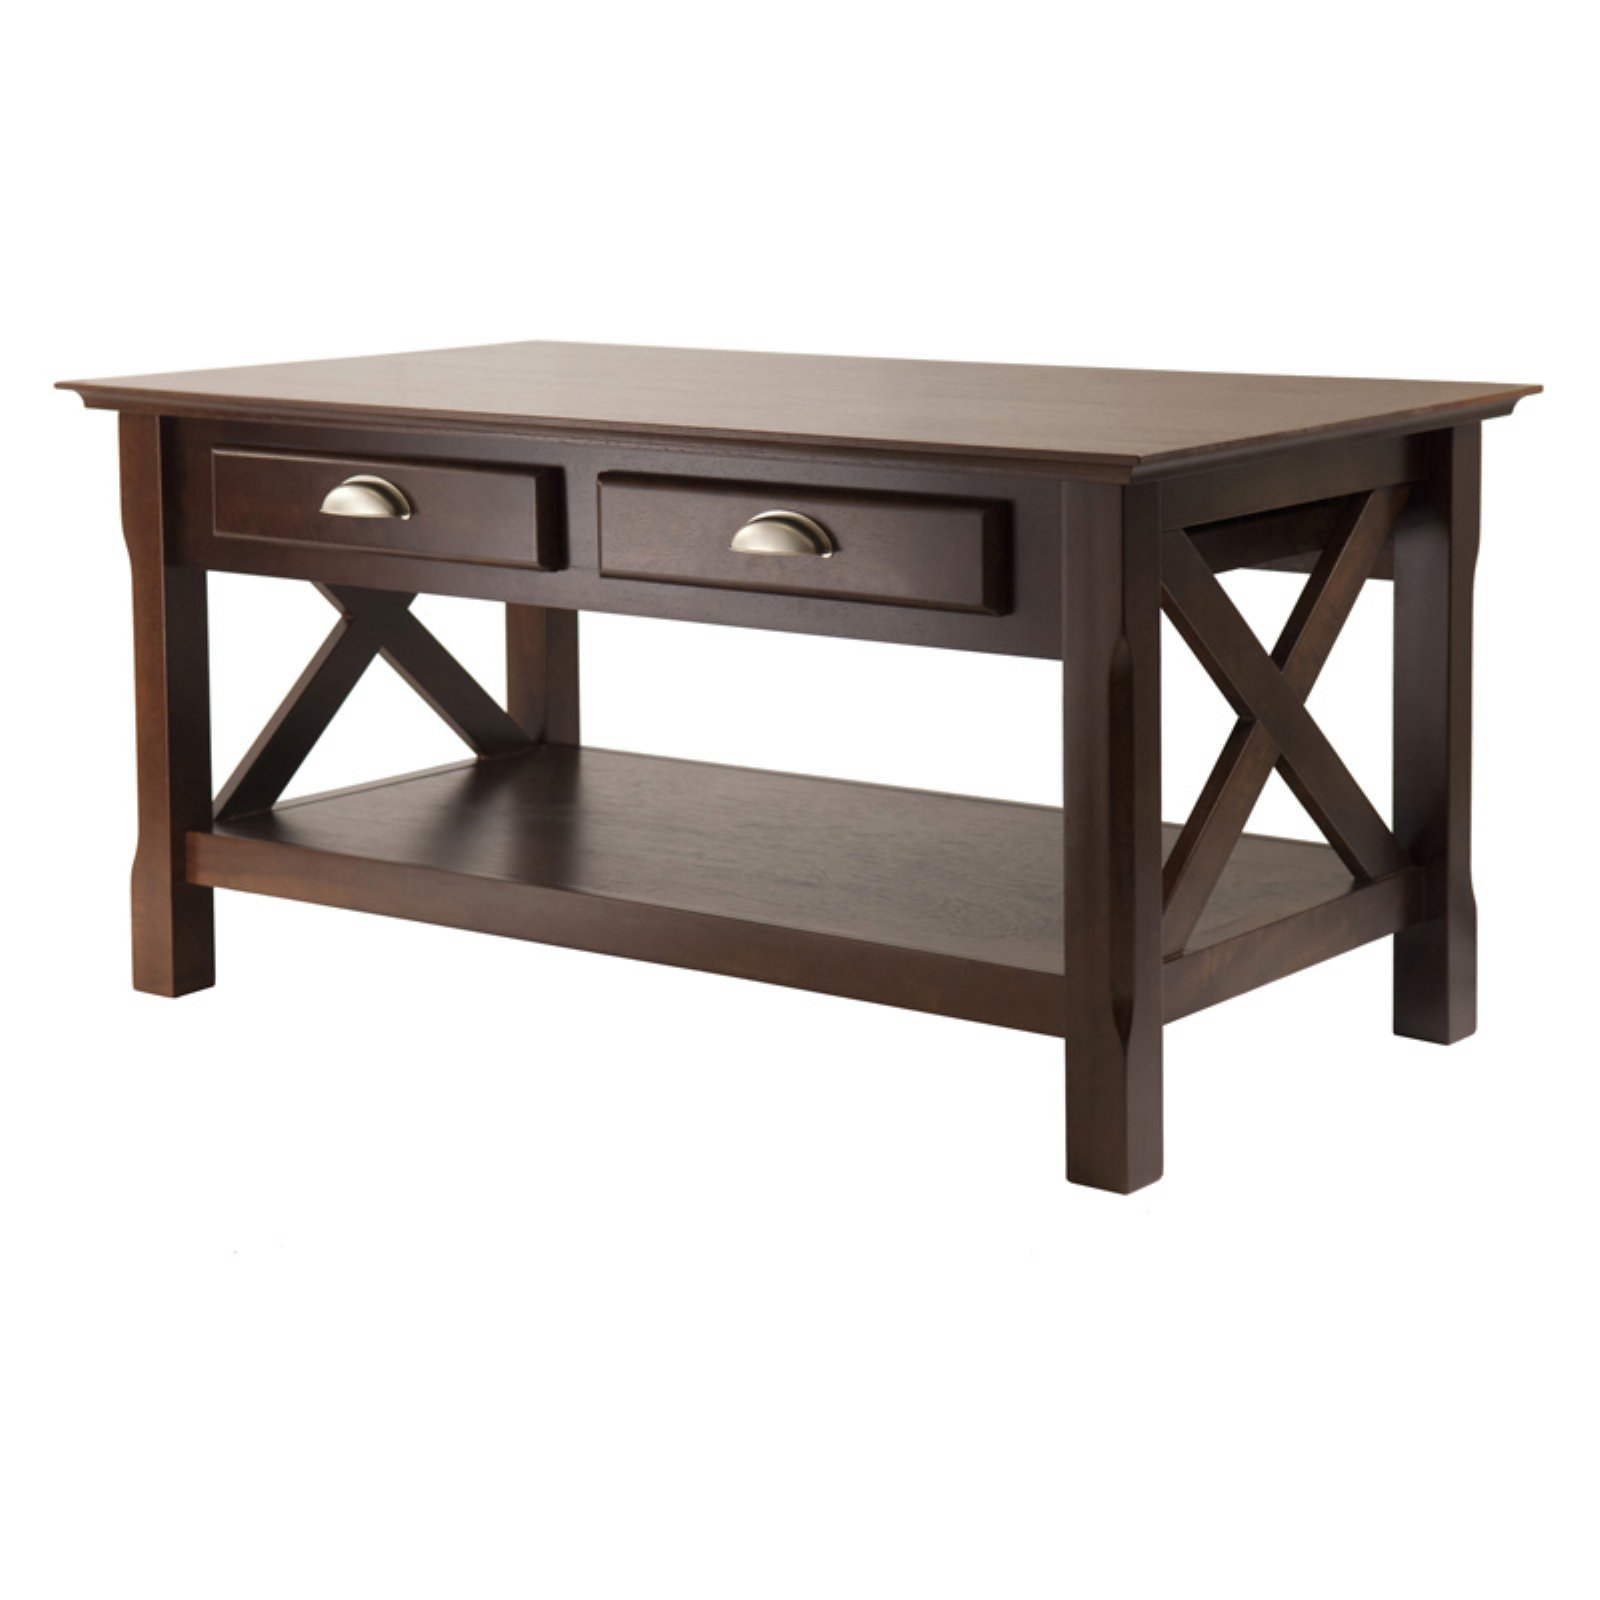 Winsome Xola Coffee Table with 2 Drawers